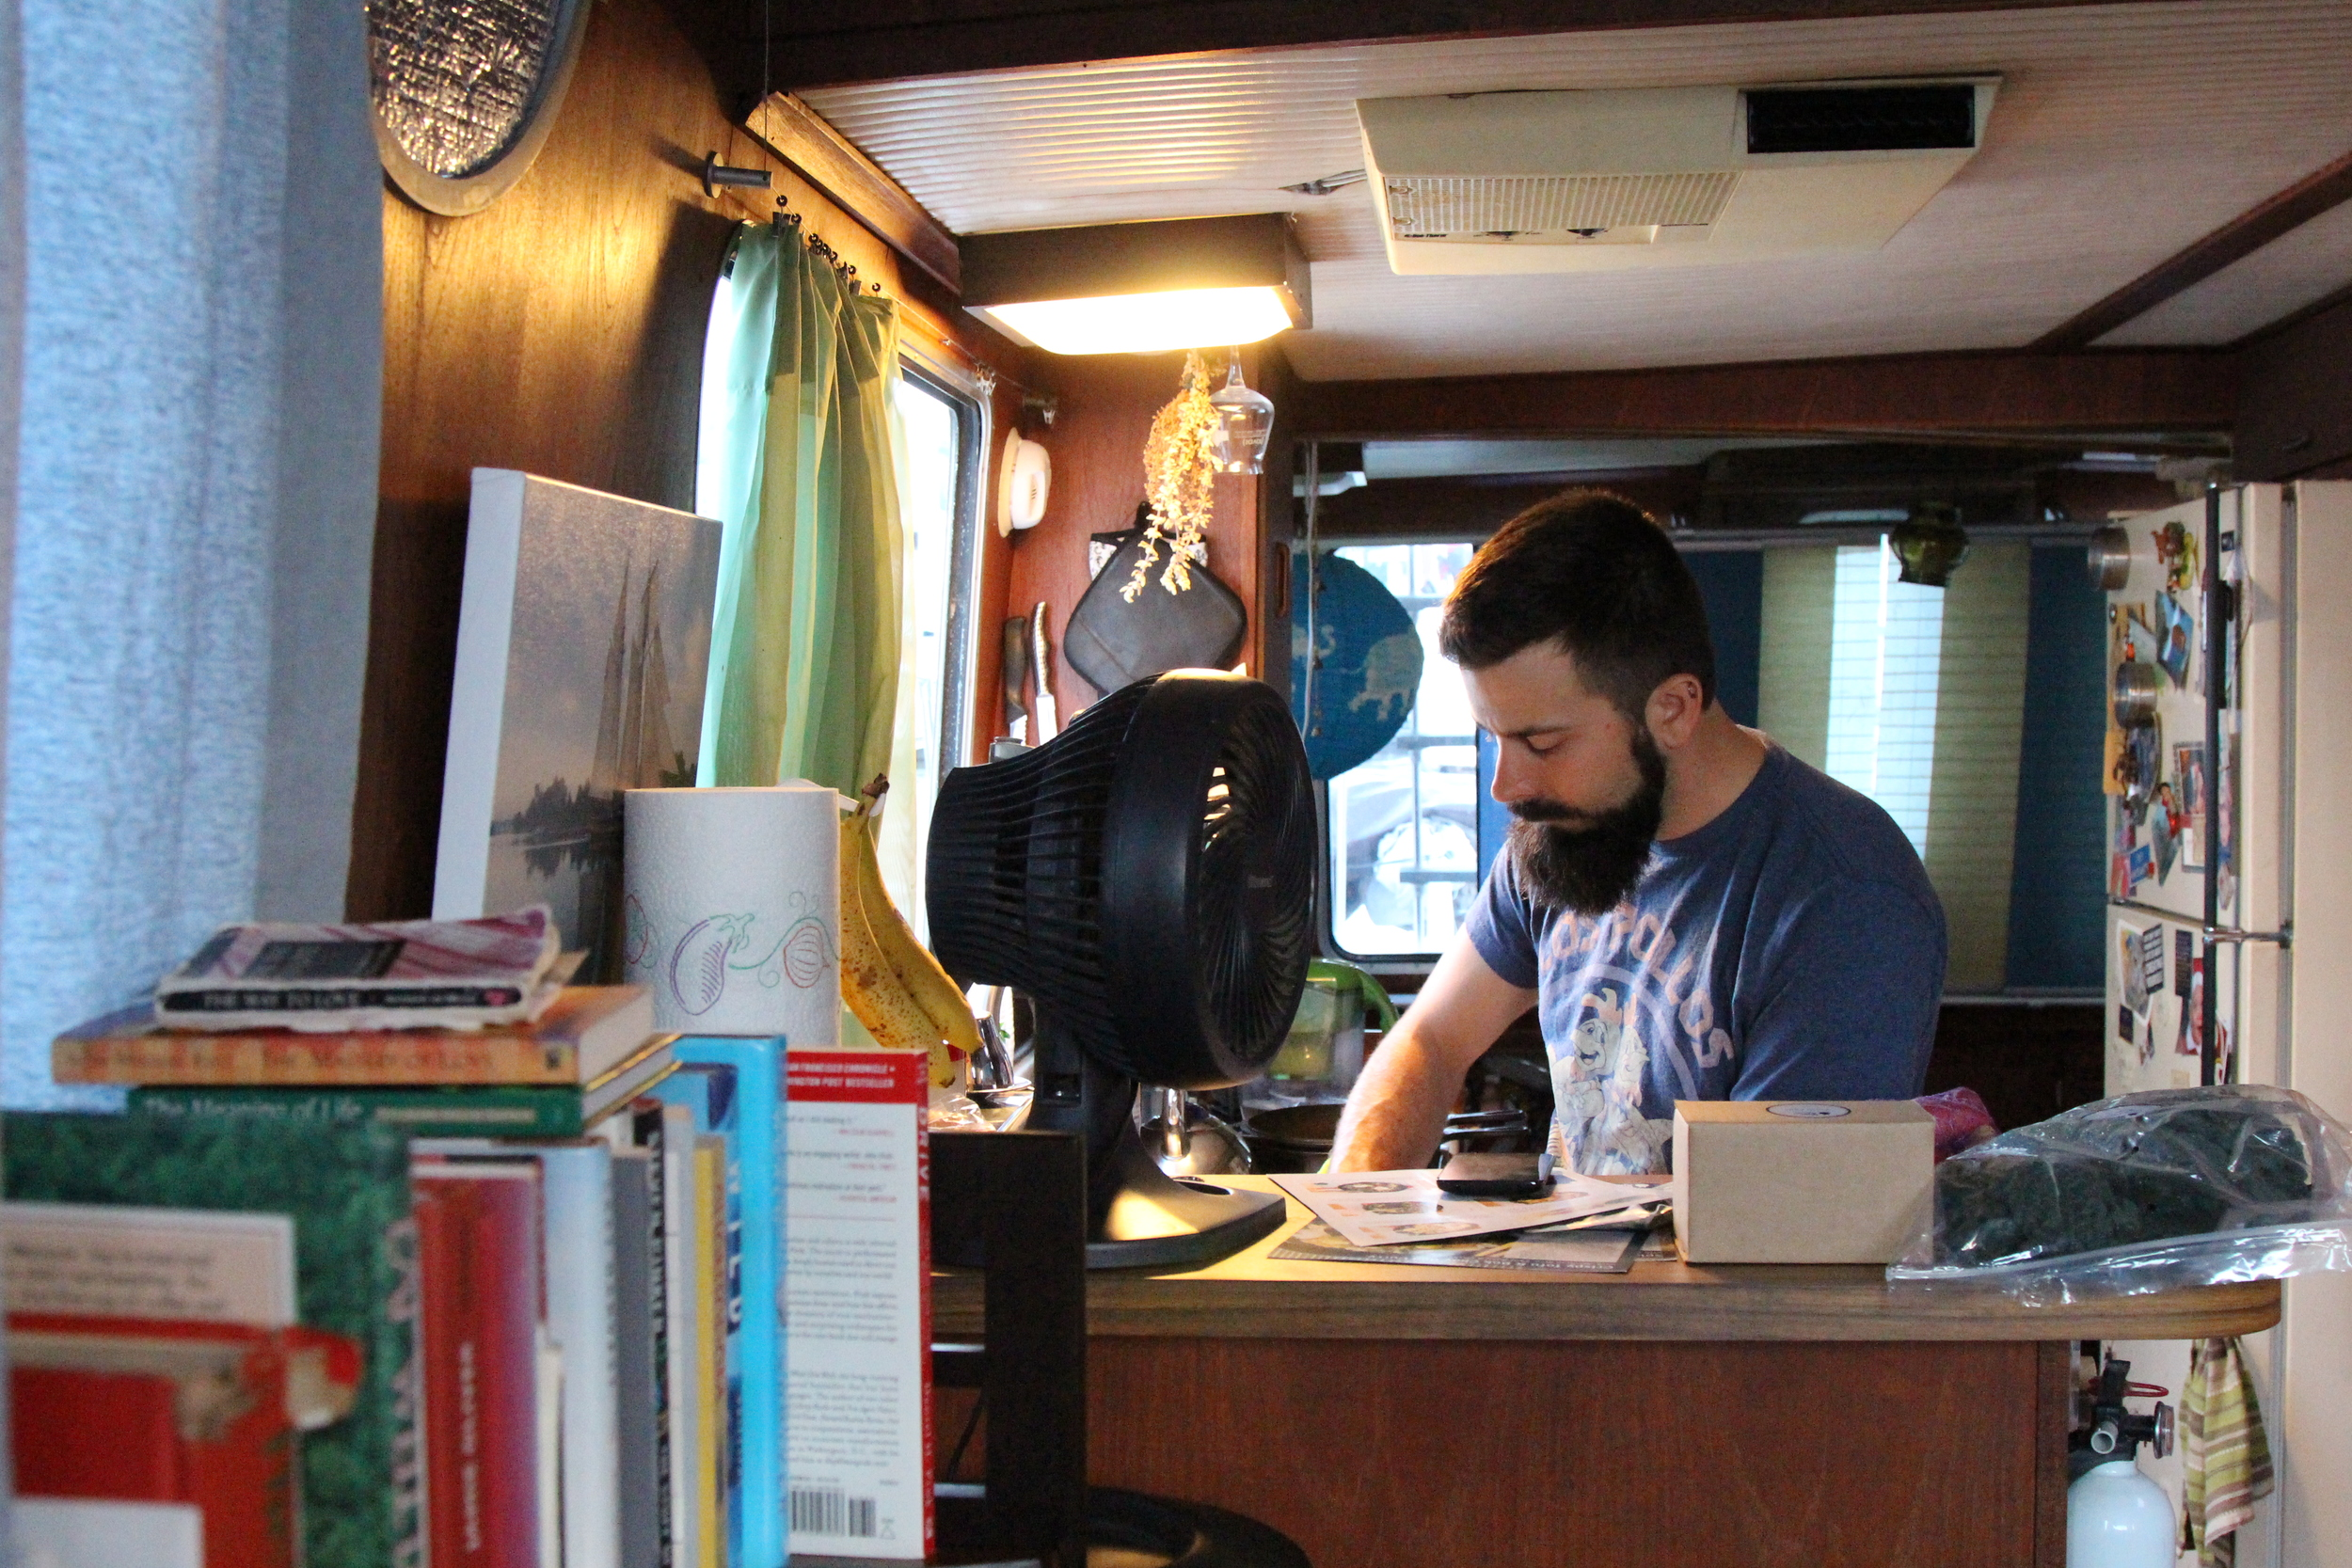 Jason Kopp cooks in his kitchen in the open space on his houseboat. Photo credit: Amel Guettatfi